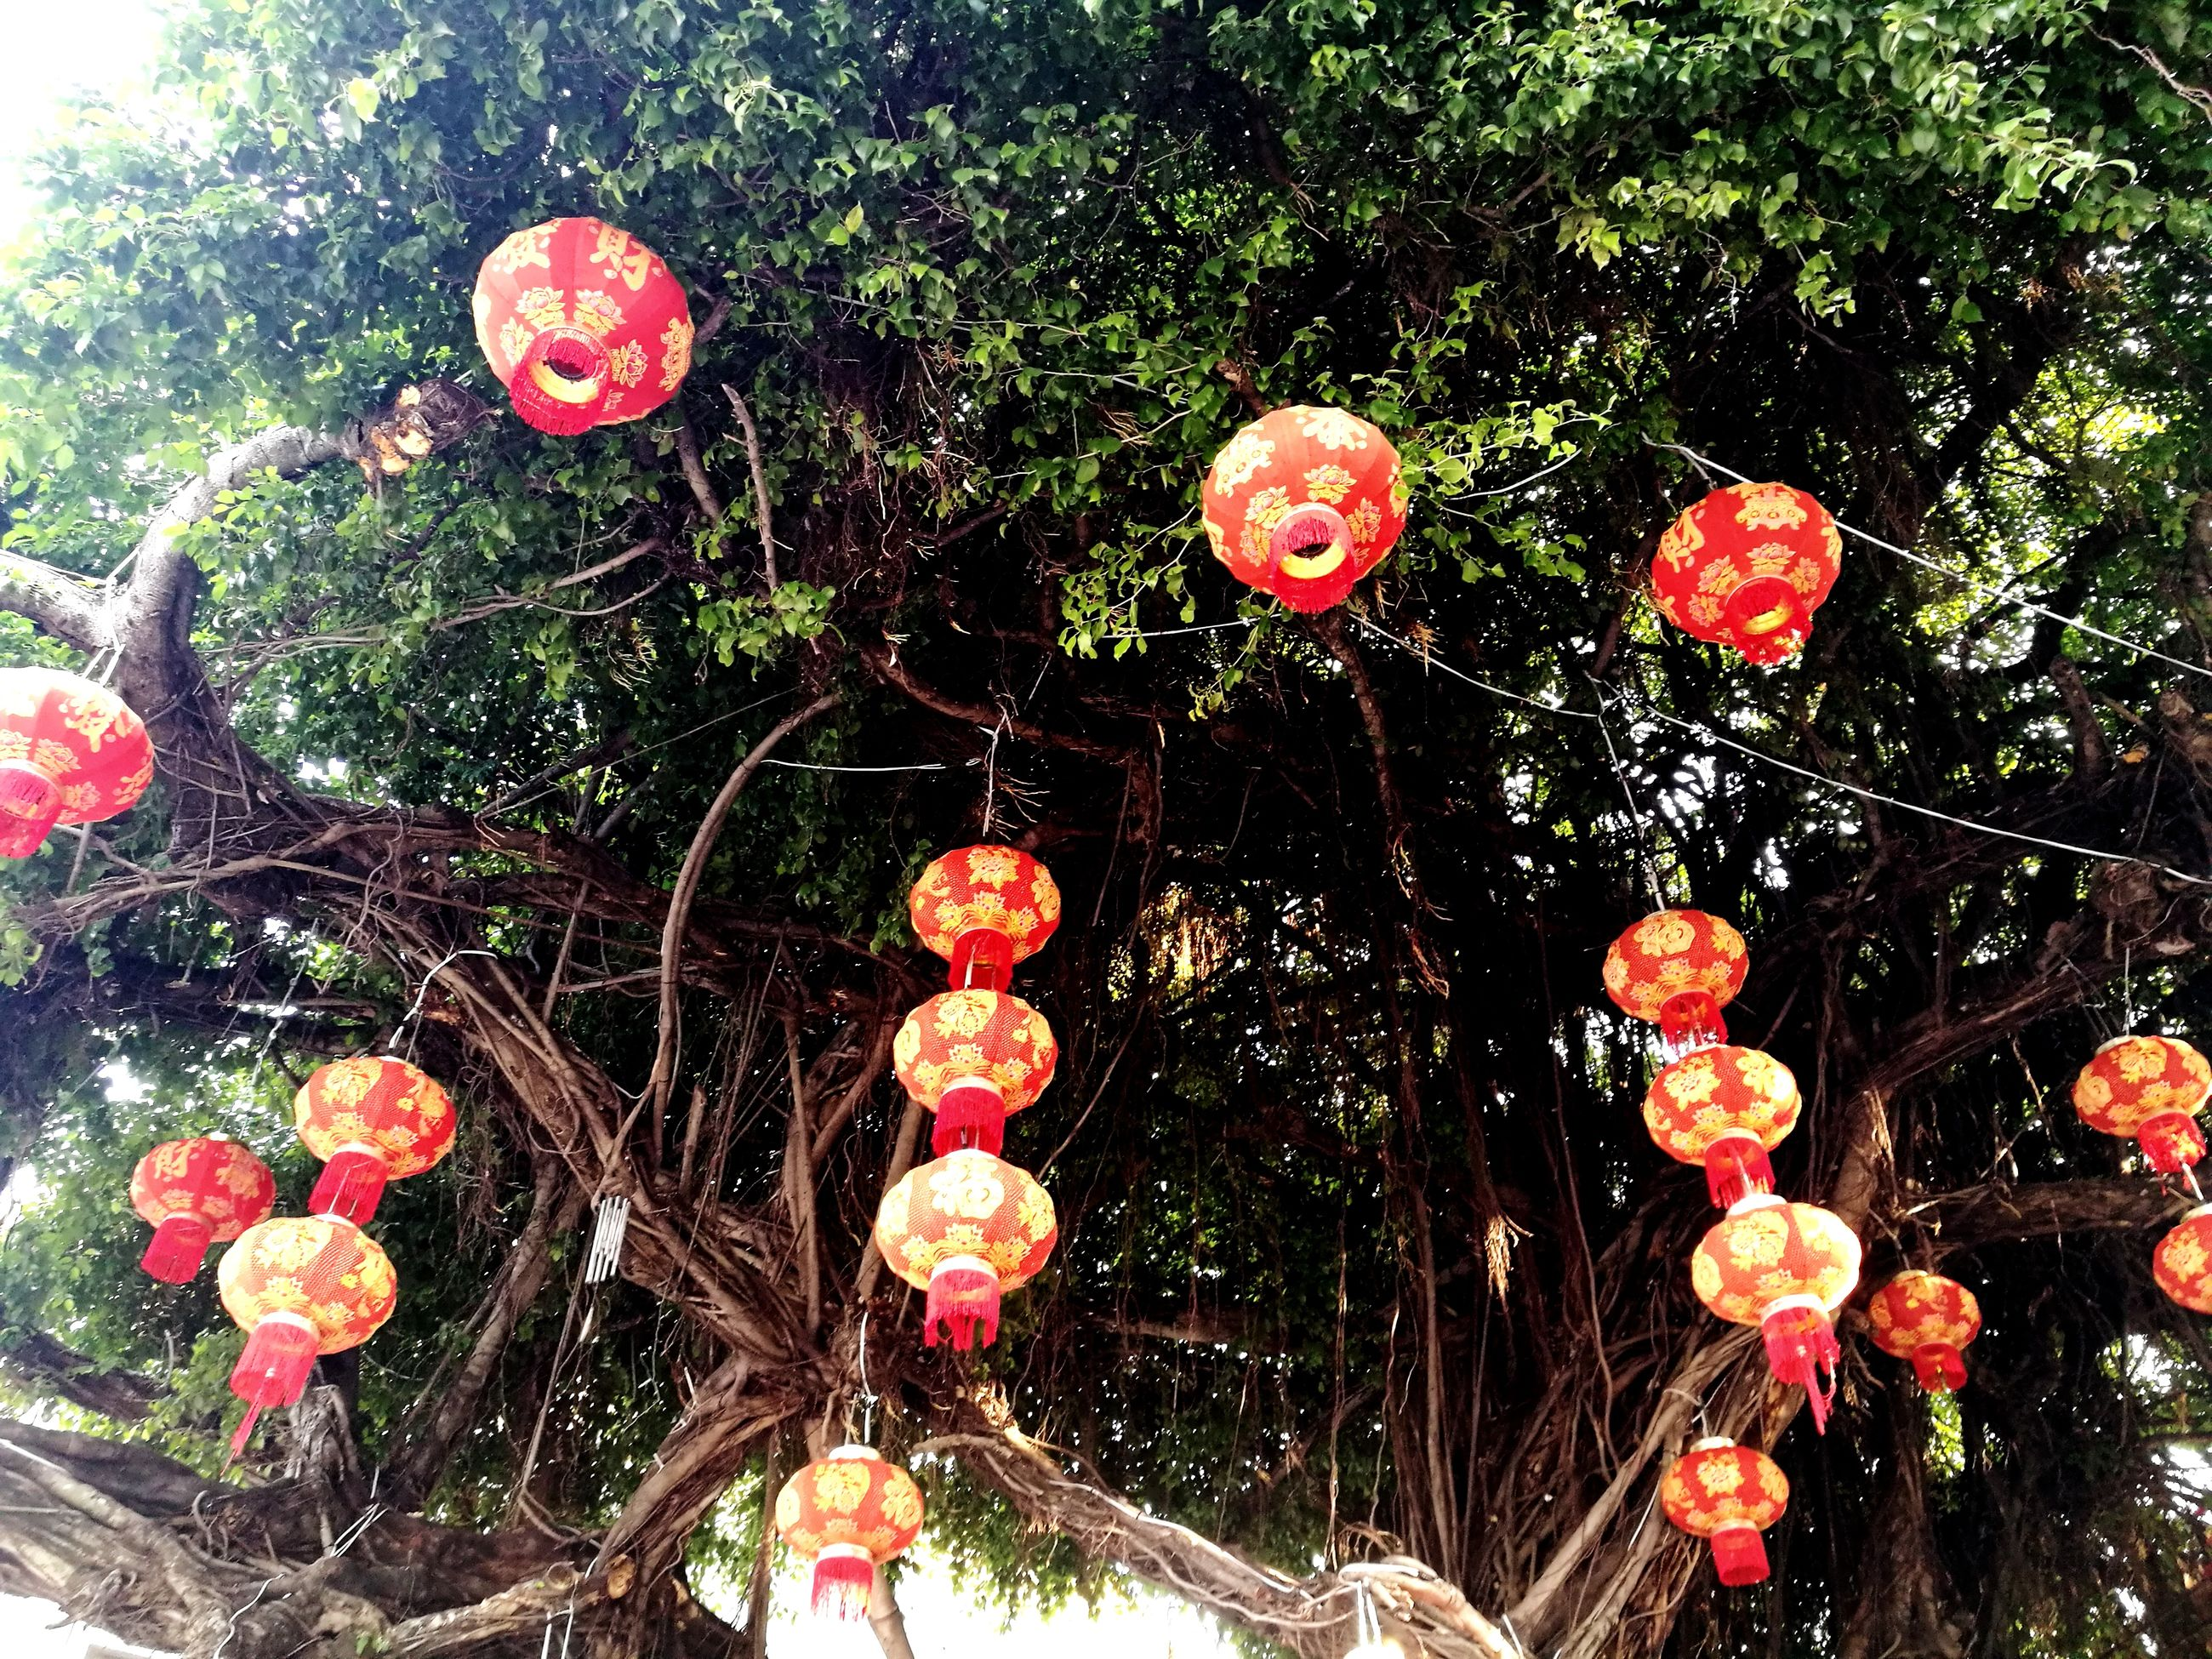 growth, tree, no people, outdoors, day, celebration, low angle view, hanging, nature, flower, close-up, beauty in nature, fragility, freshness